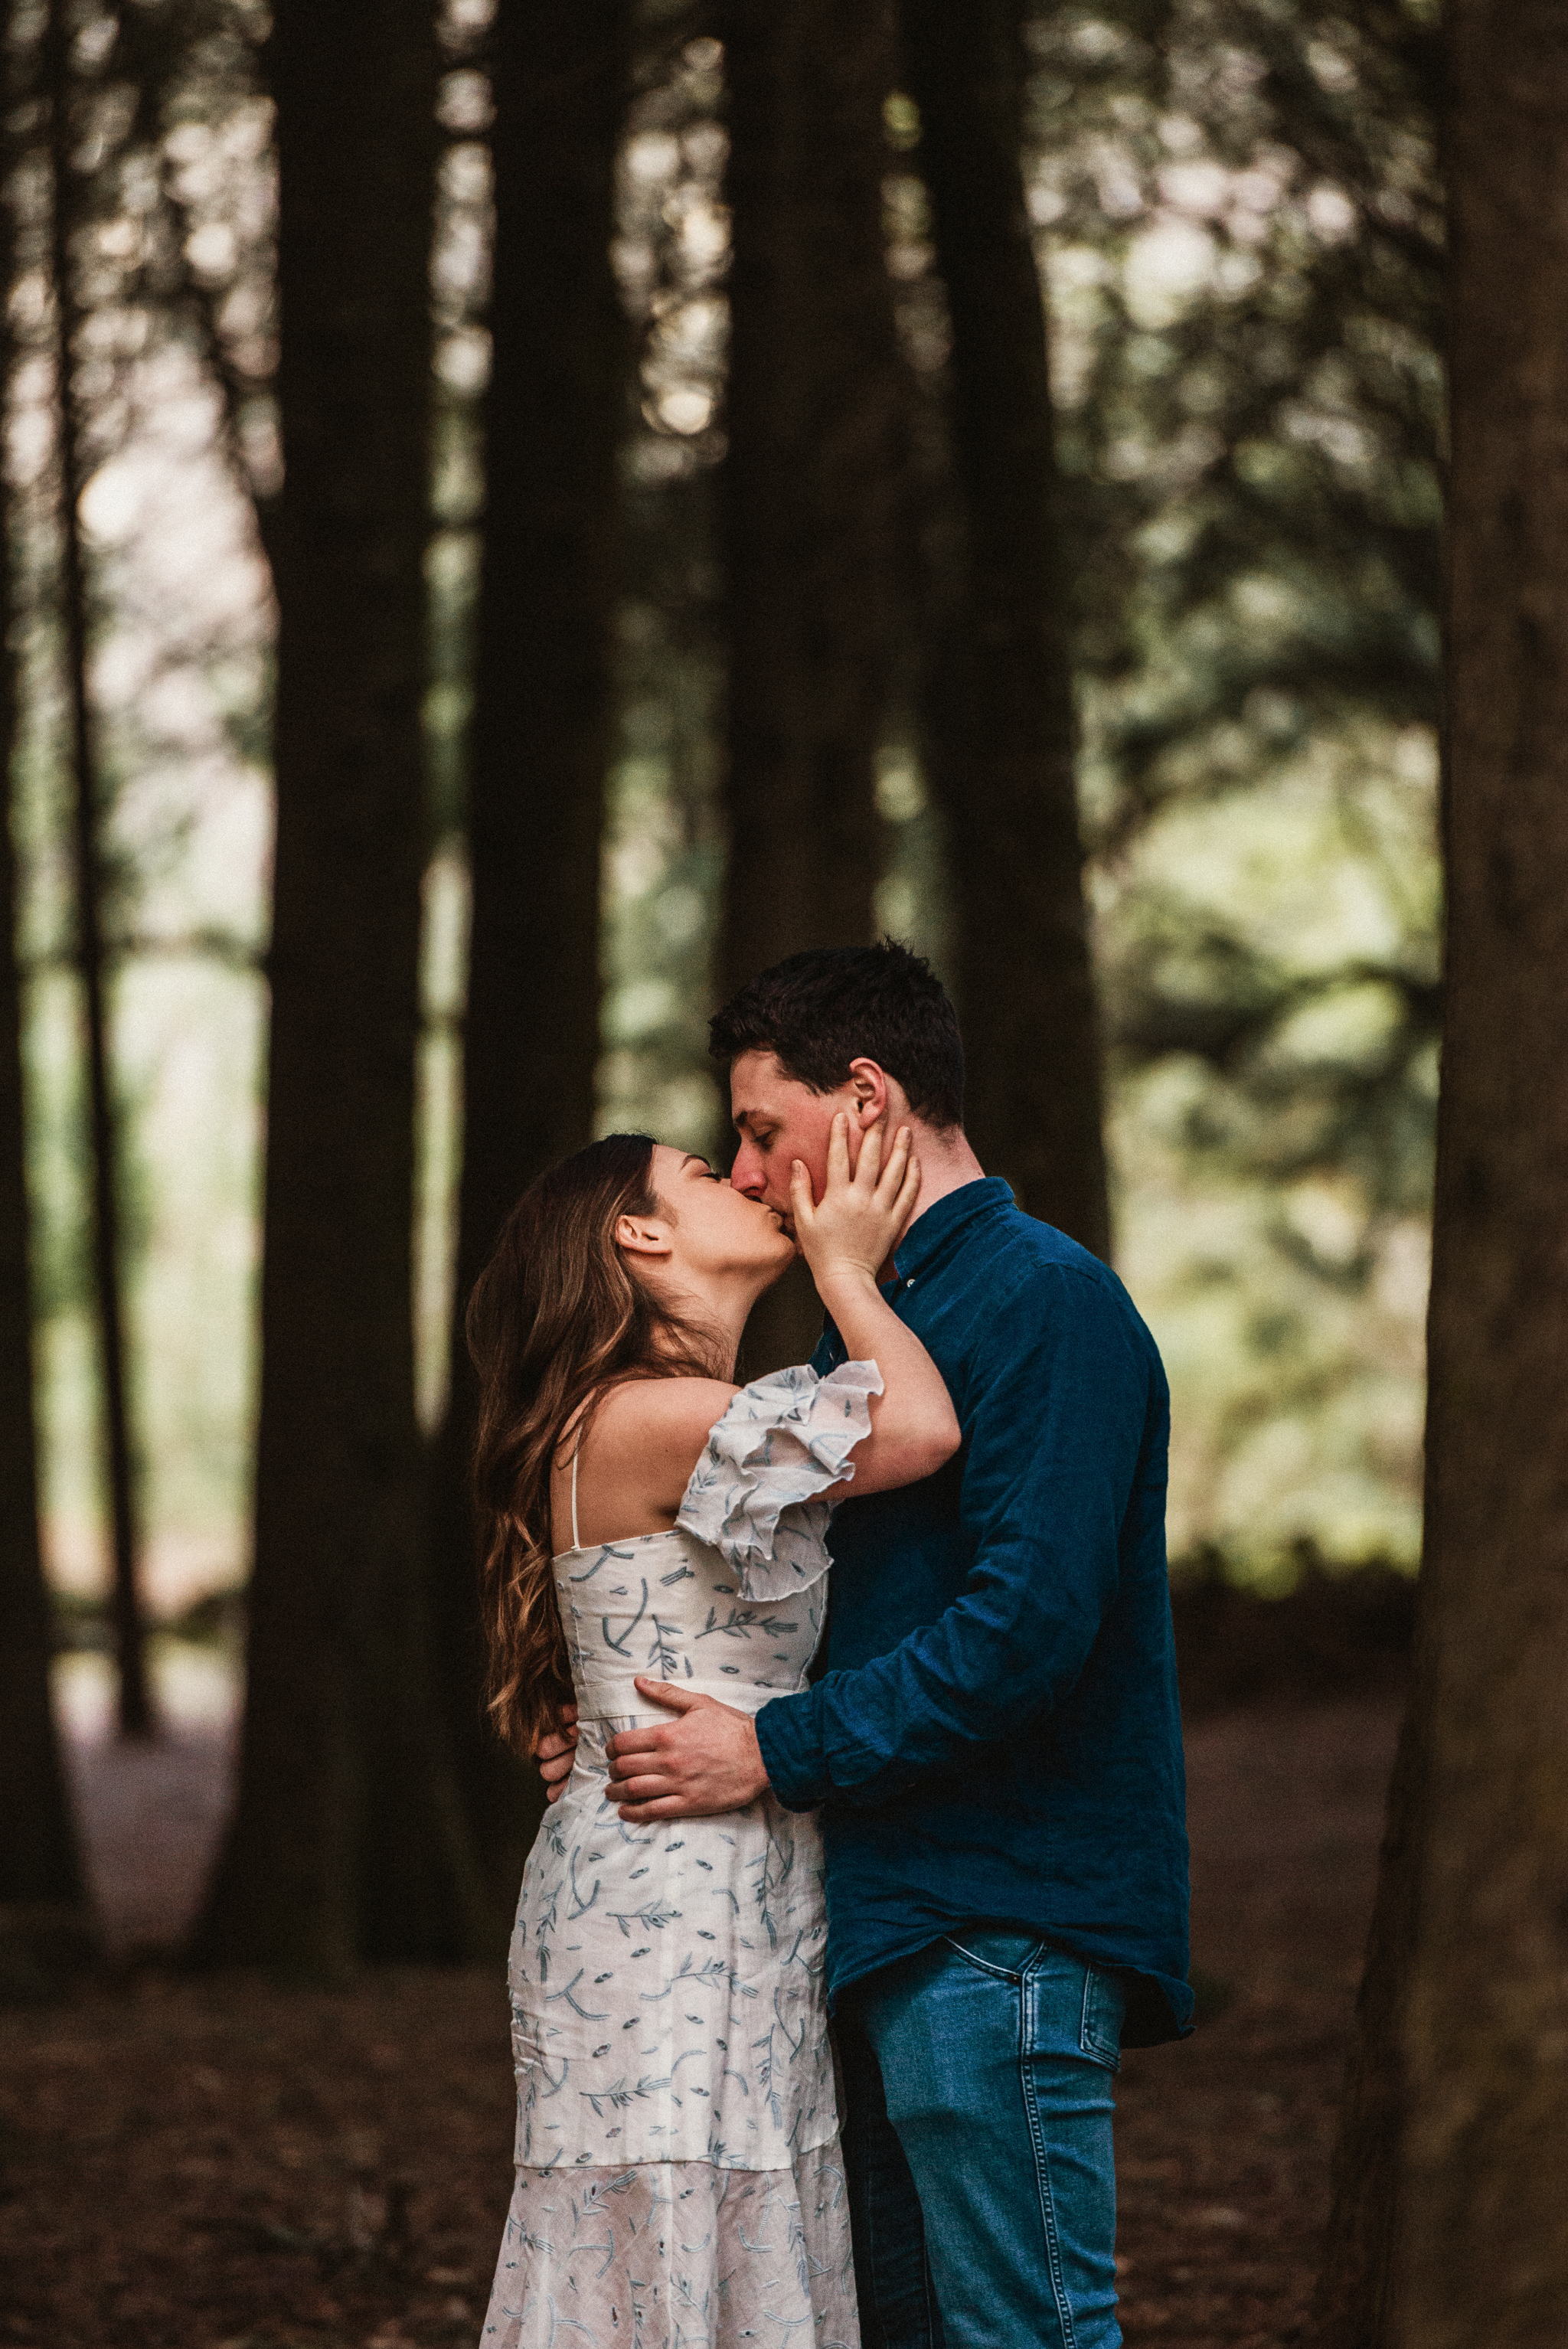 launceston couples photographer-8.jpg